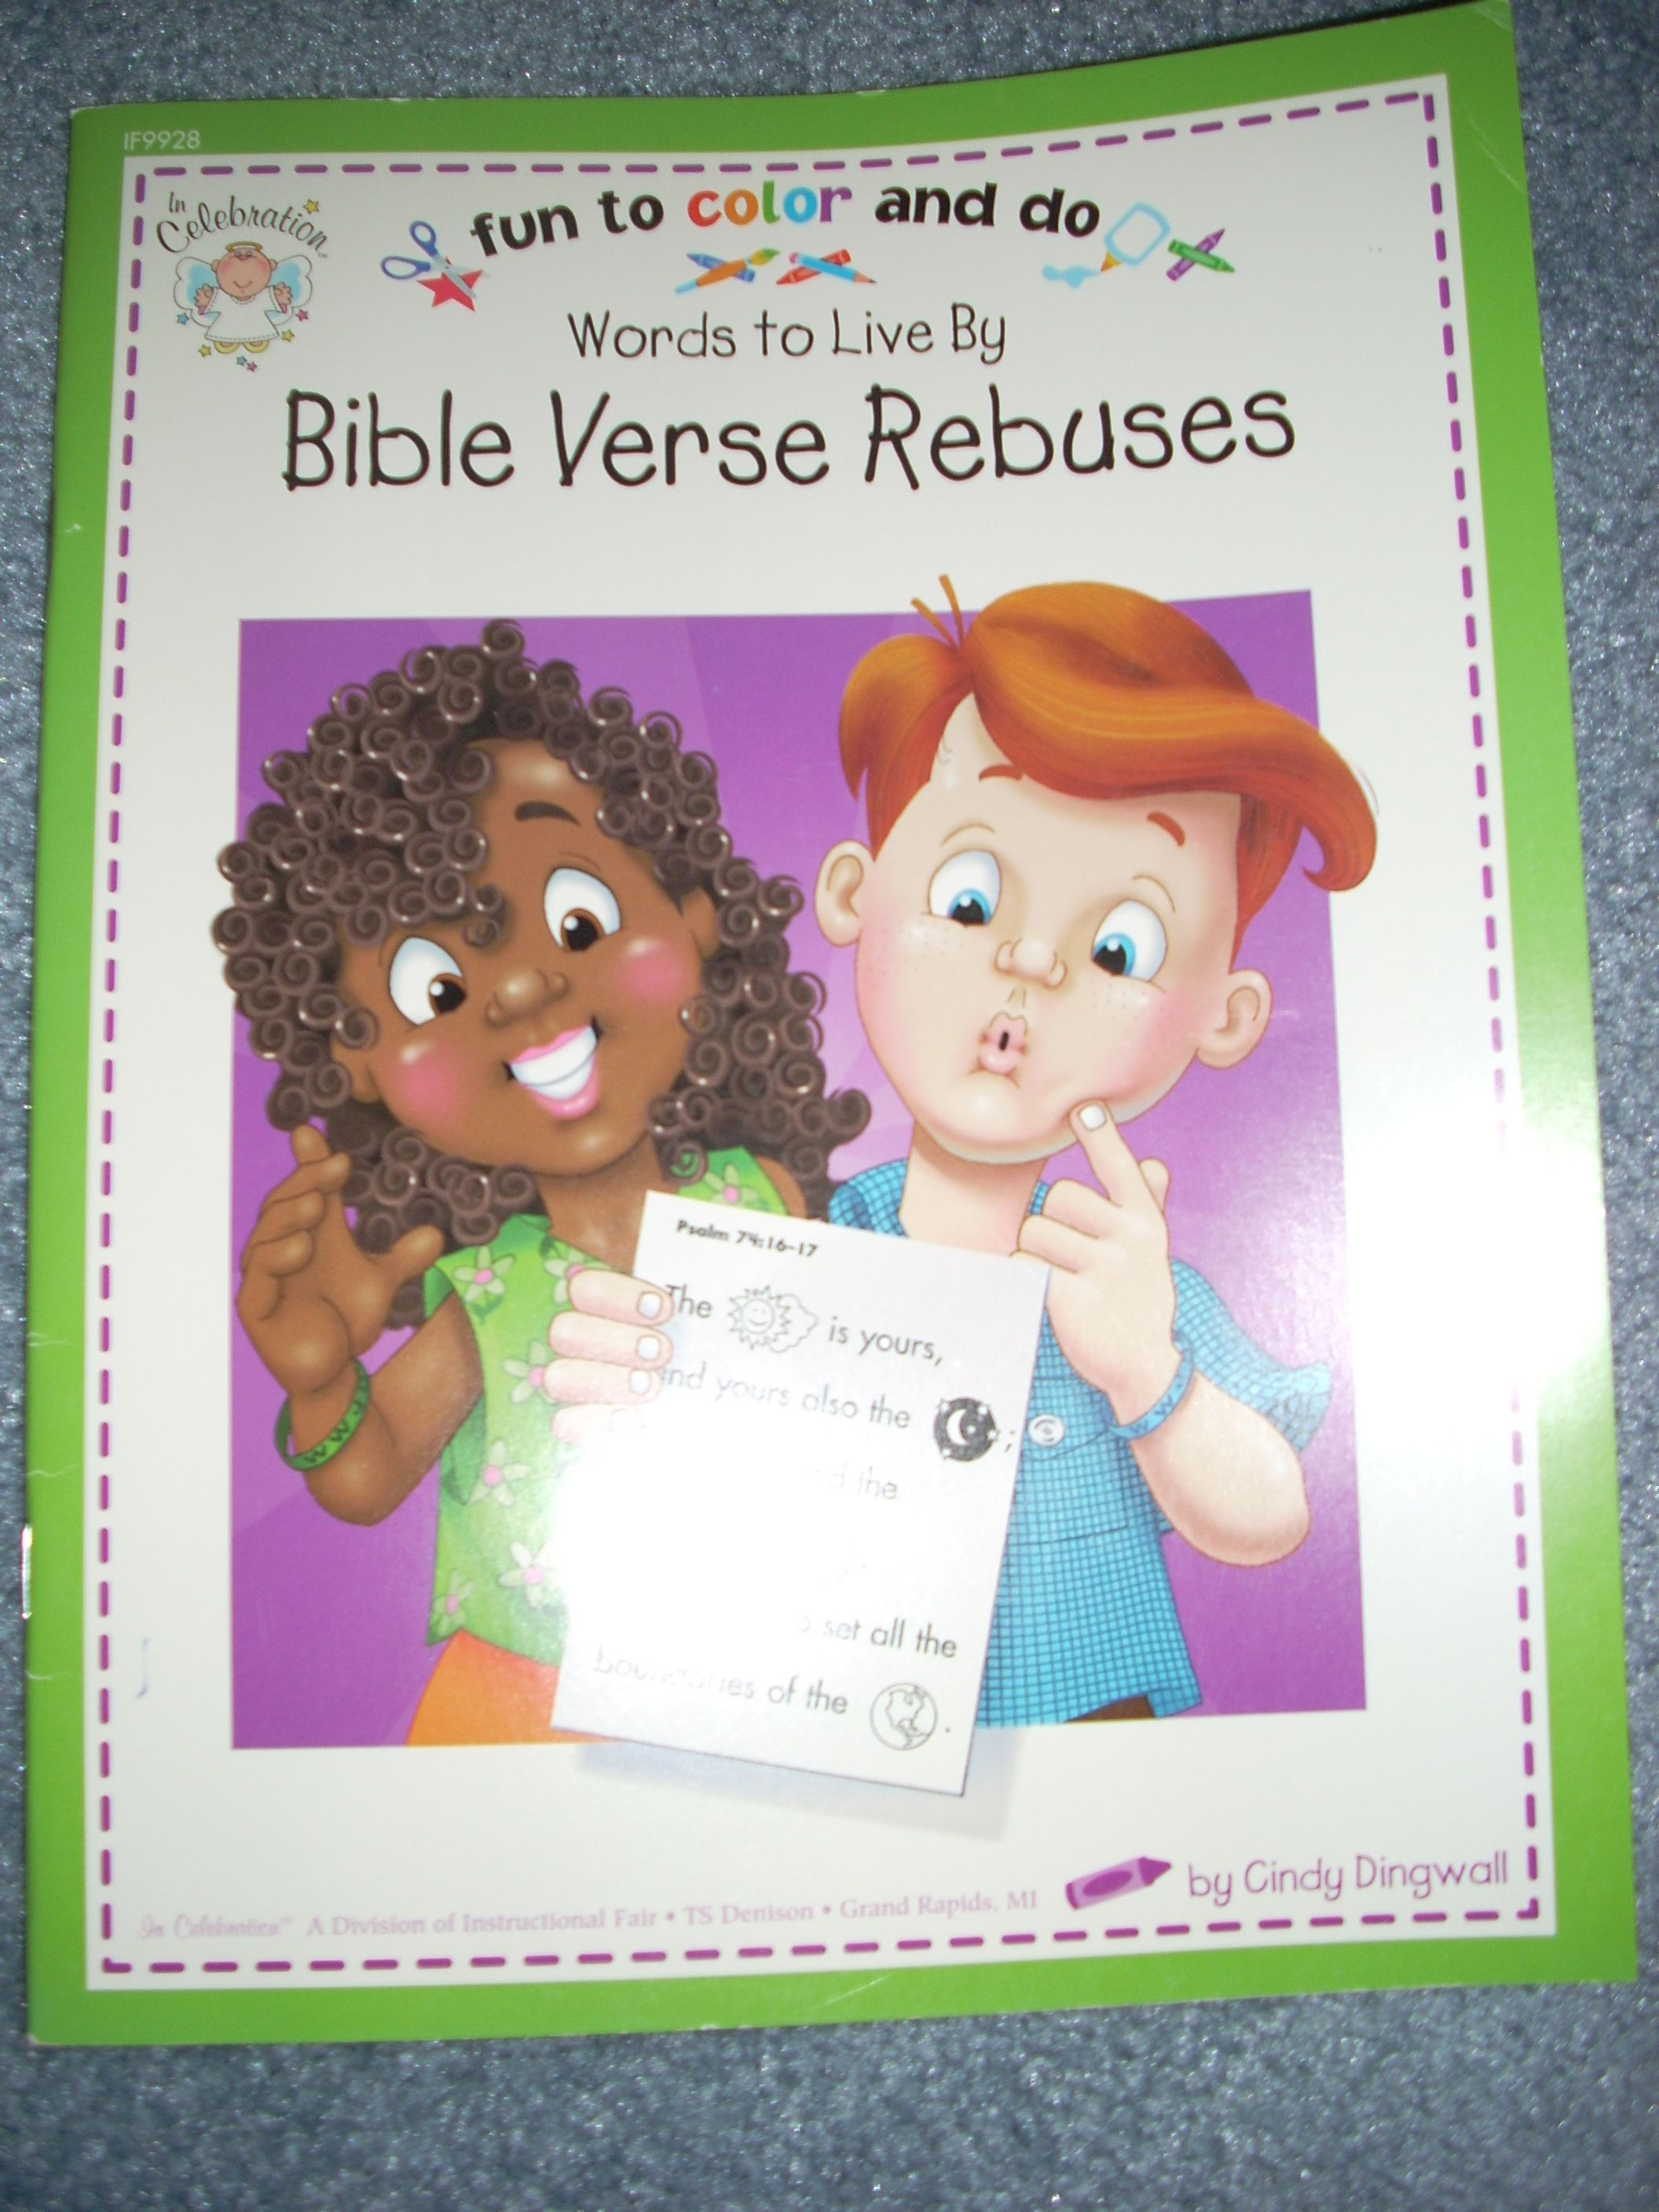 Words to Live By Bible Verse Rebuses...Learn Bible verses